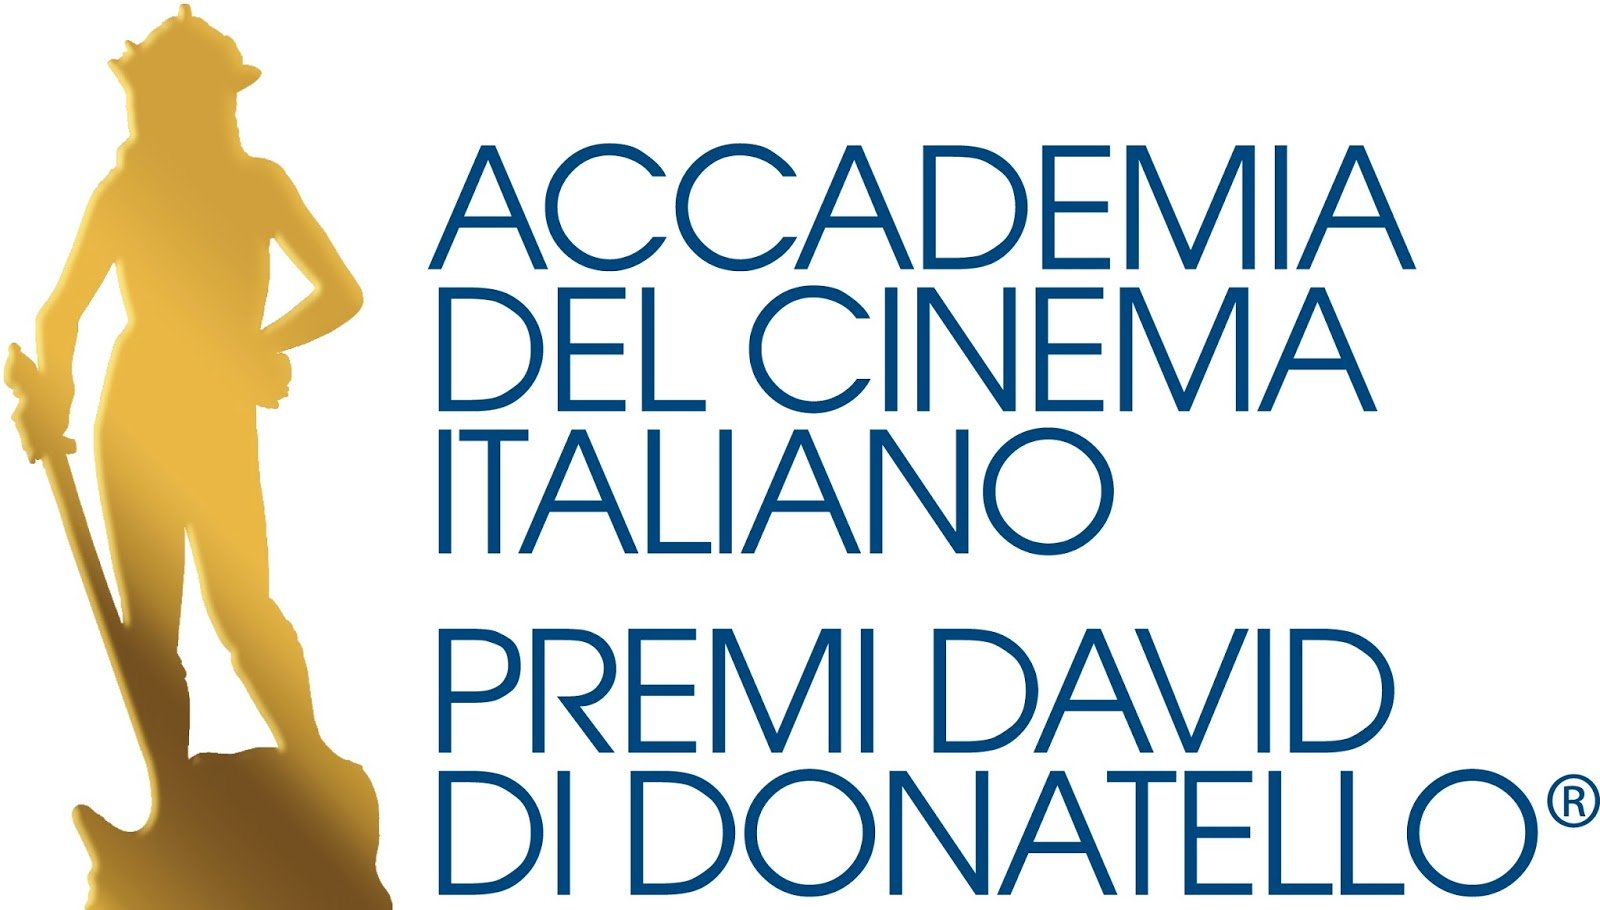 Accademia Del Cinema Italiano Award logo